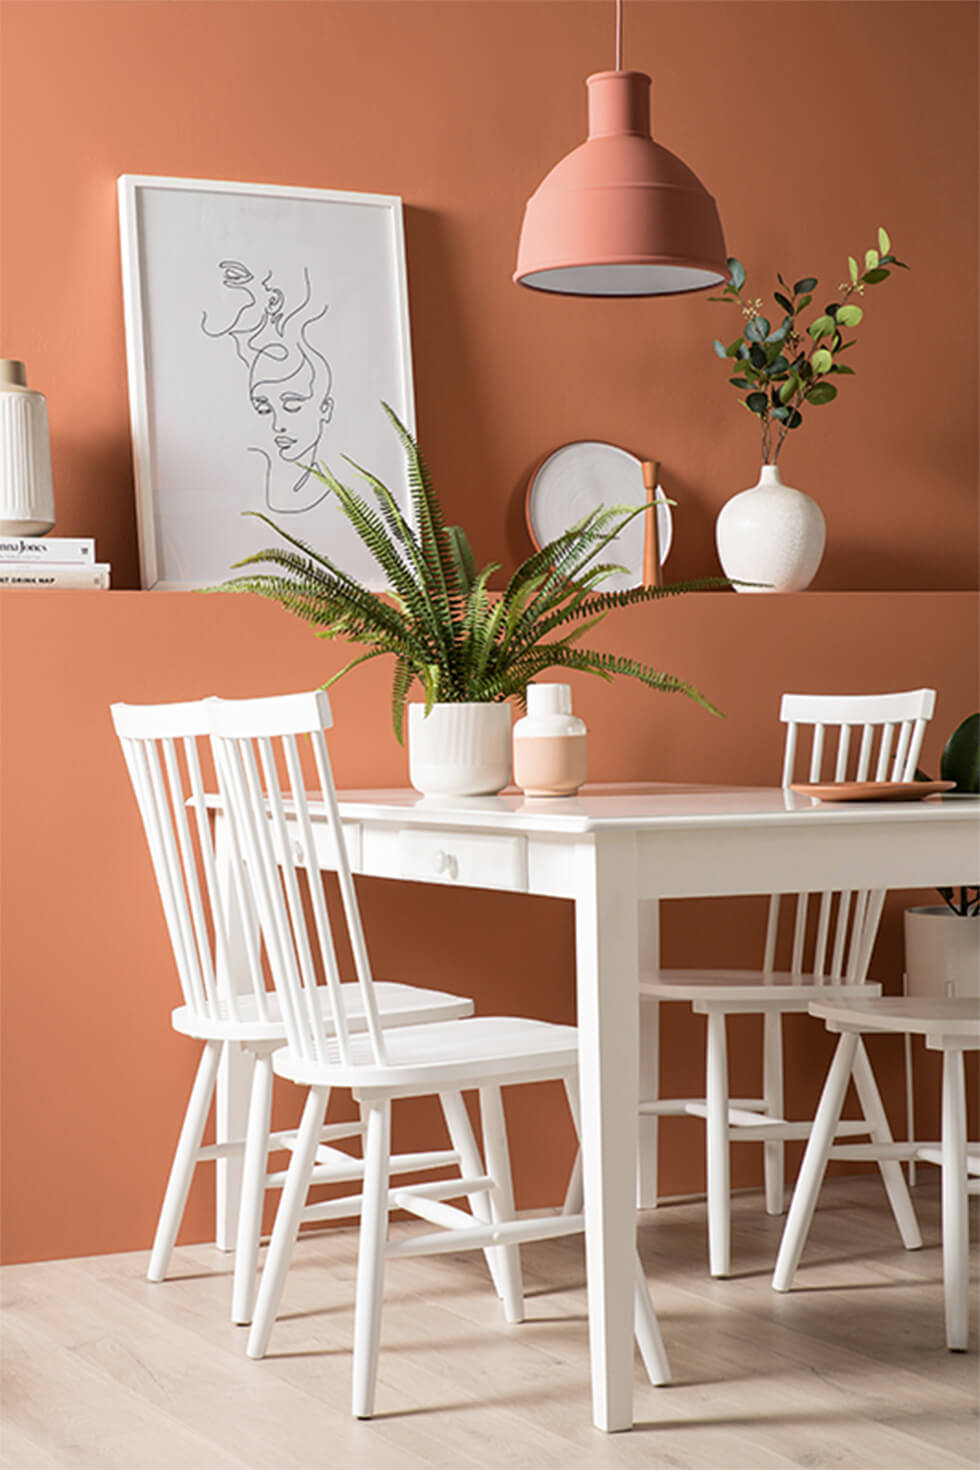 White wooden dining set against terracotta statement wall